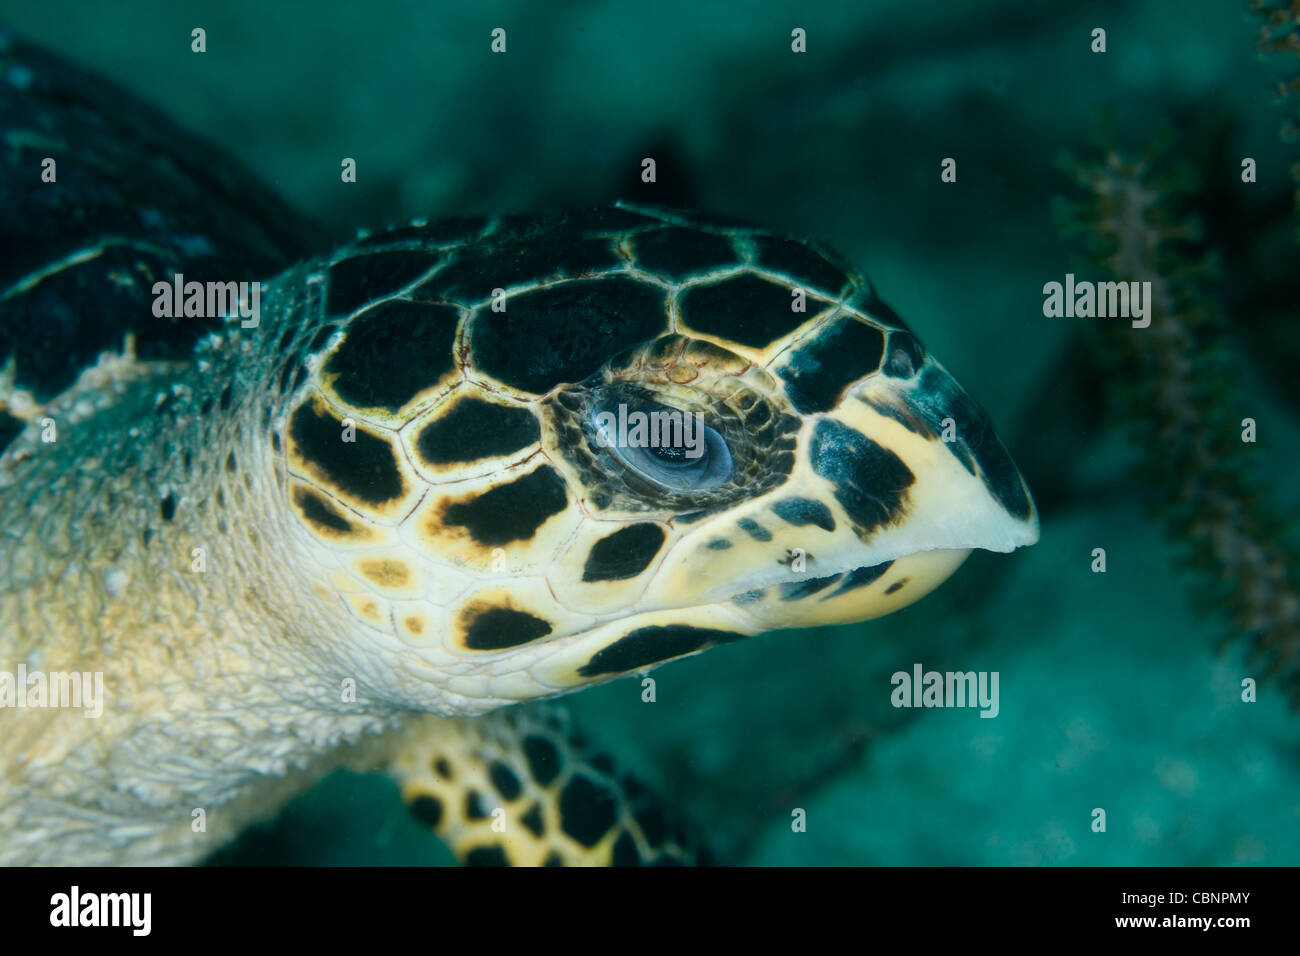 Close-up of a sea turtle in the Caribbean Sea Stock Photo